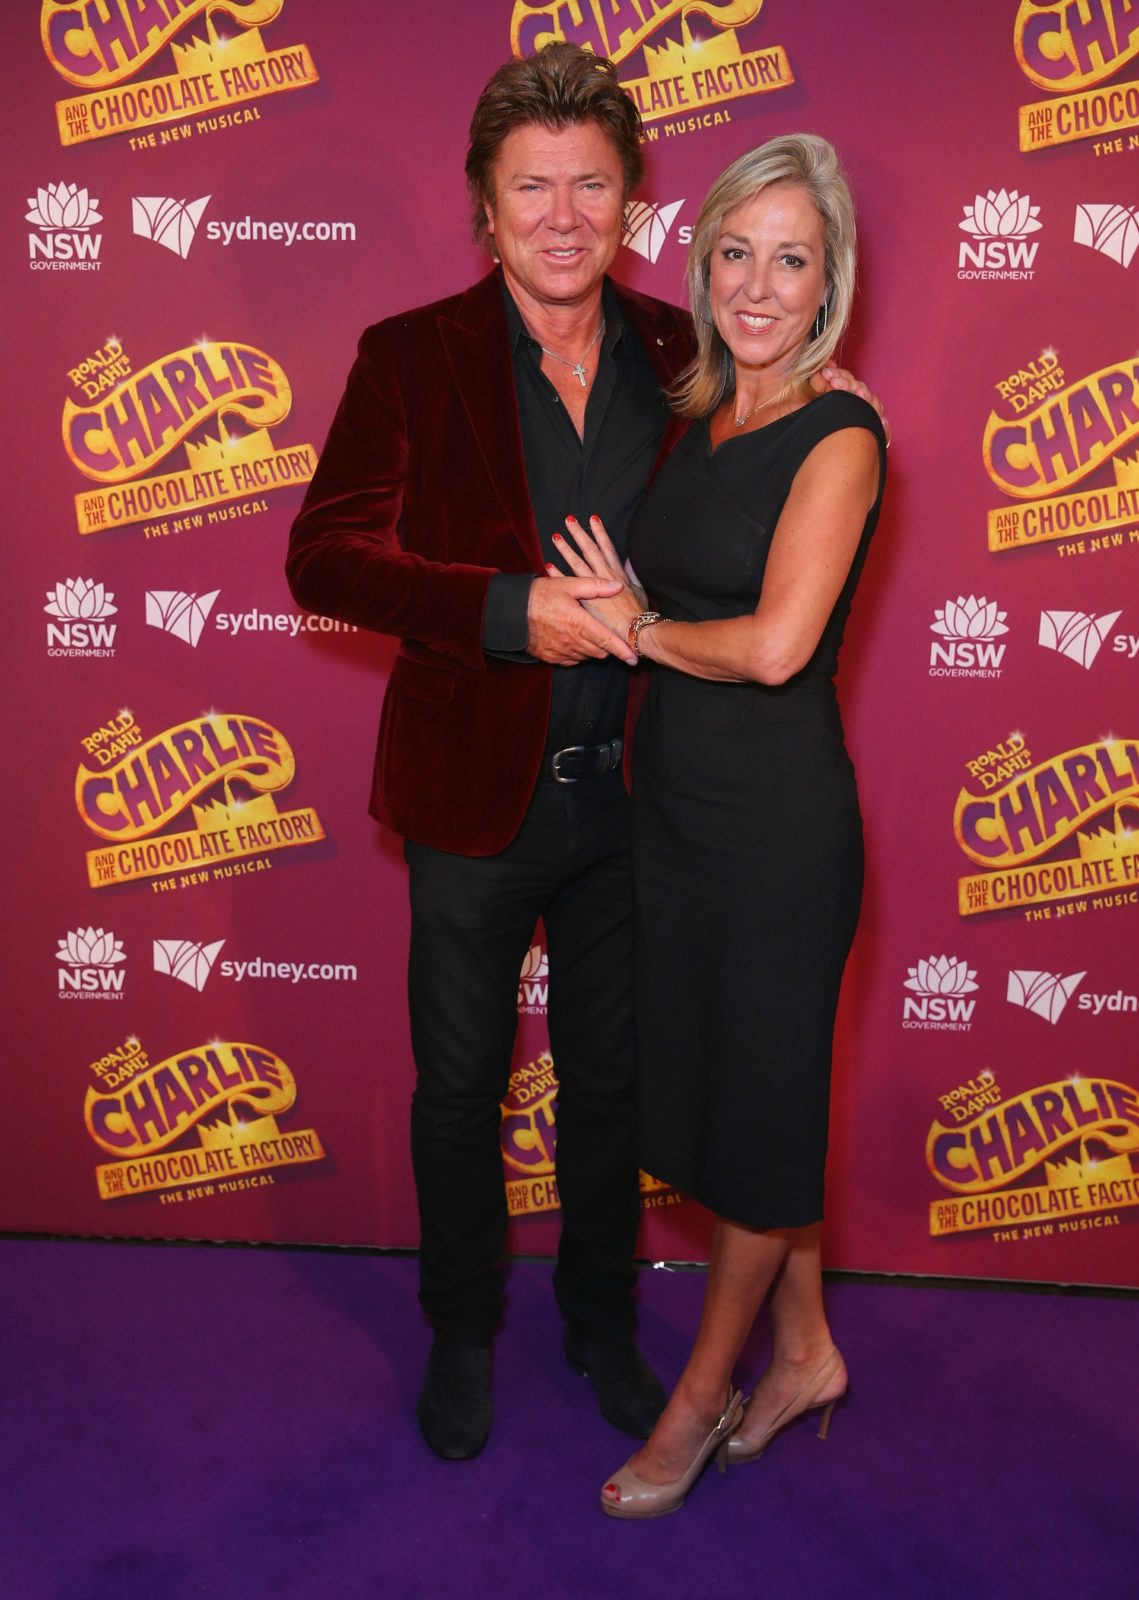 Virginia Burmeister stole the show at a star-studded event in Sydney, alongside Richard Wilkins. Source: Getty